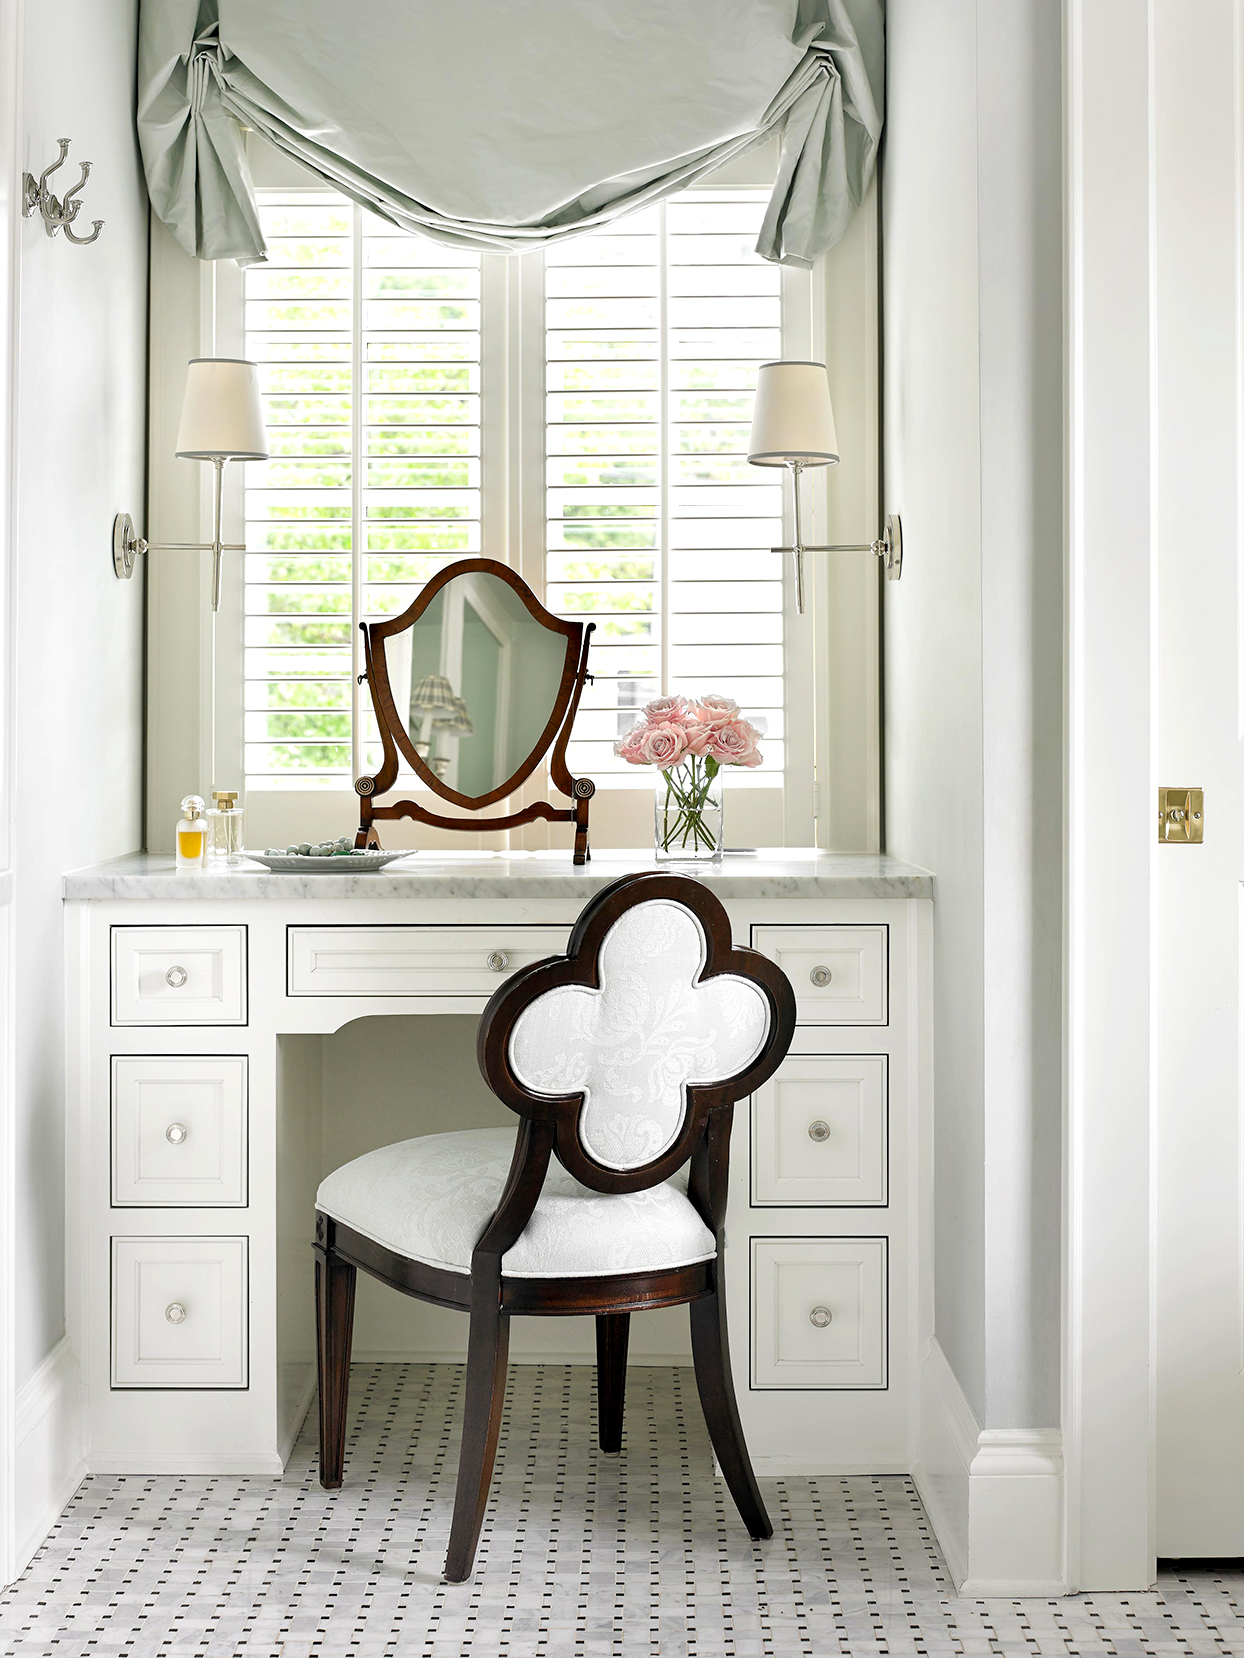 Bathroom vanity with clover back chair